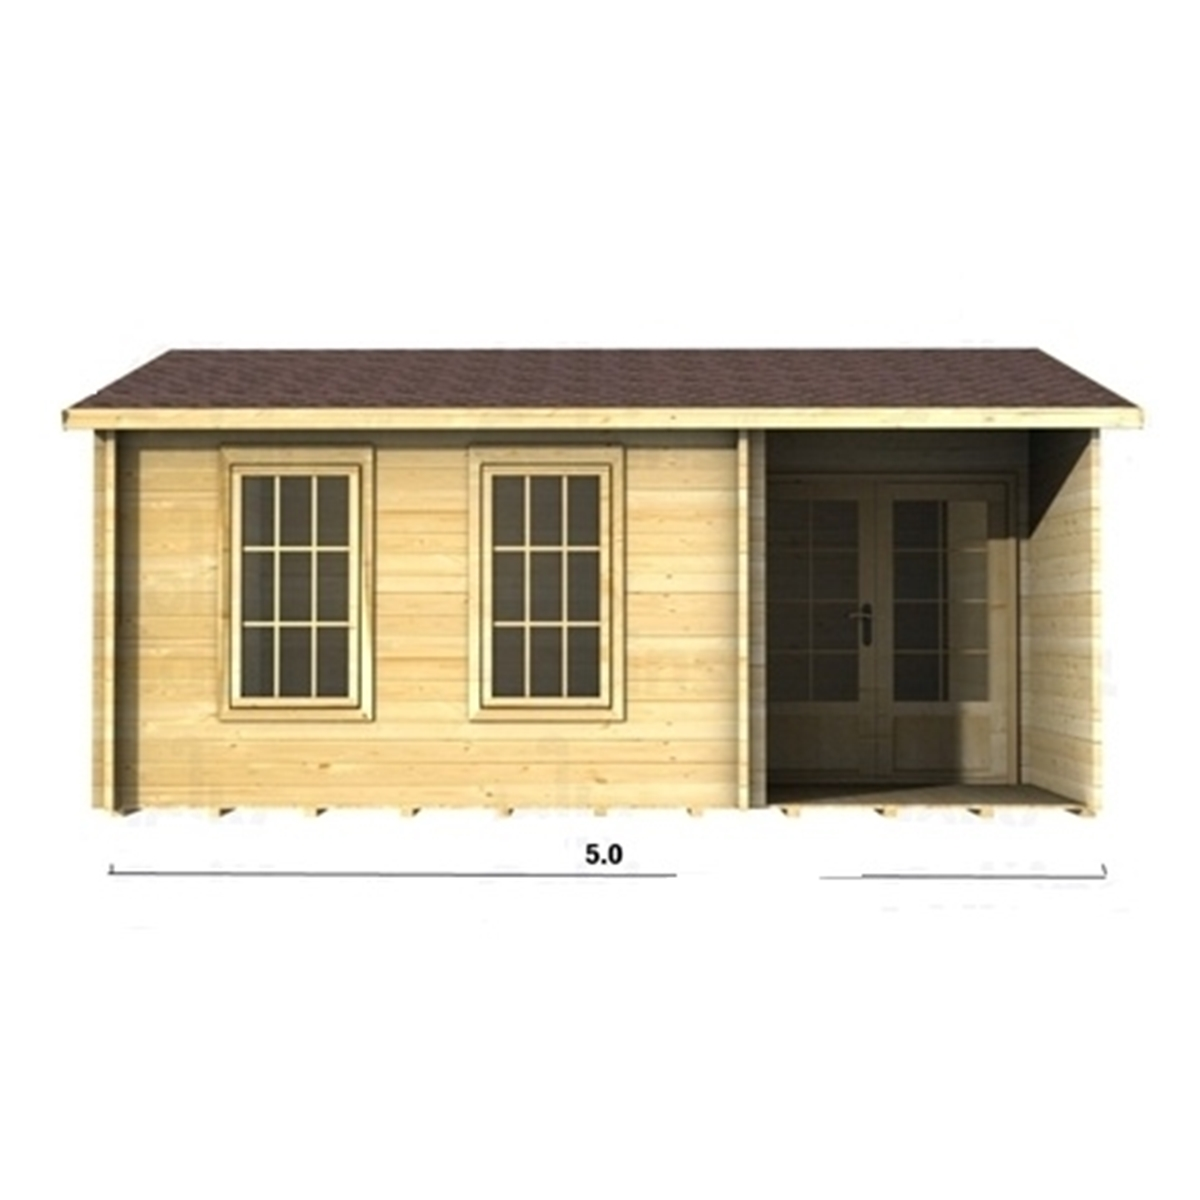 Marvelous photograph of 5m x 3m (16 x 10) Apex Reverse Log Cabin (2090) Double Glazing  with #A97F22 color and 1200x1200 pixels